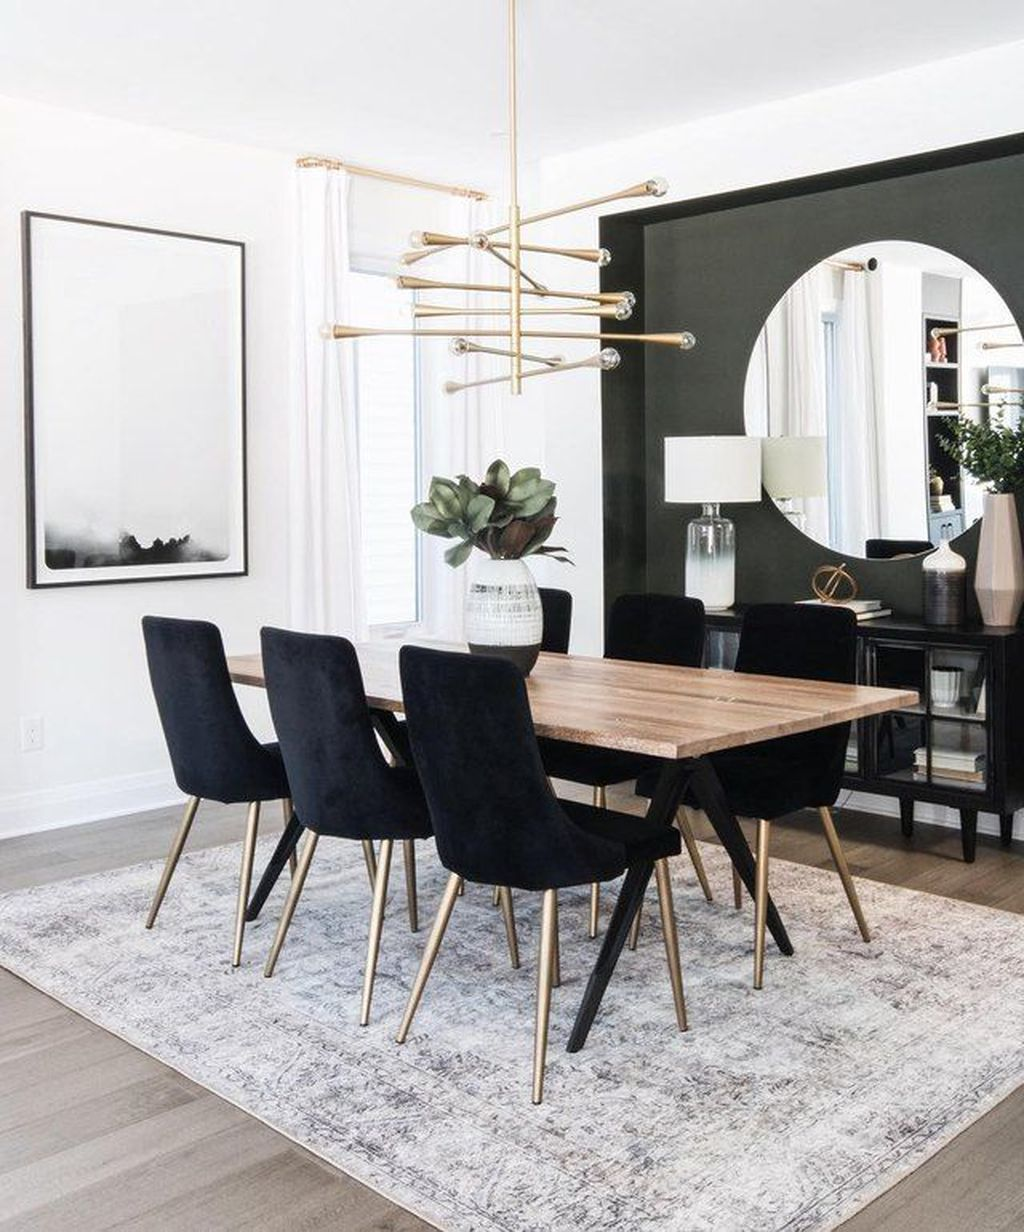 Admirable Dining Room Design Ideas You Will Love 06 1